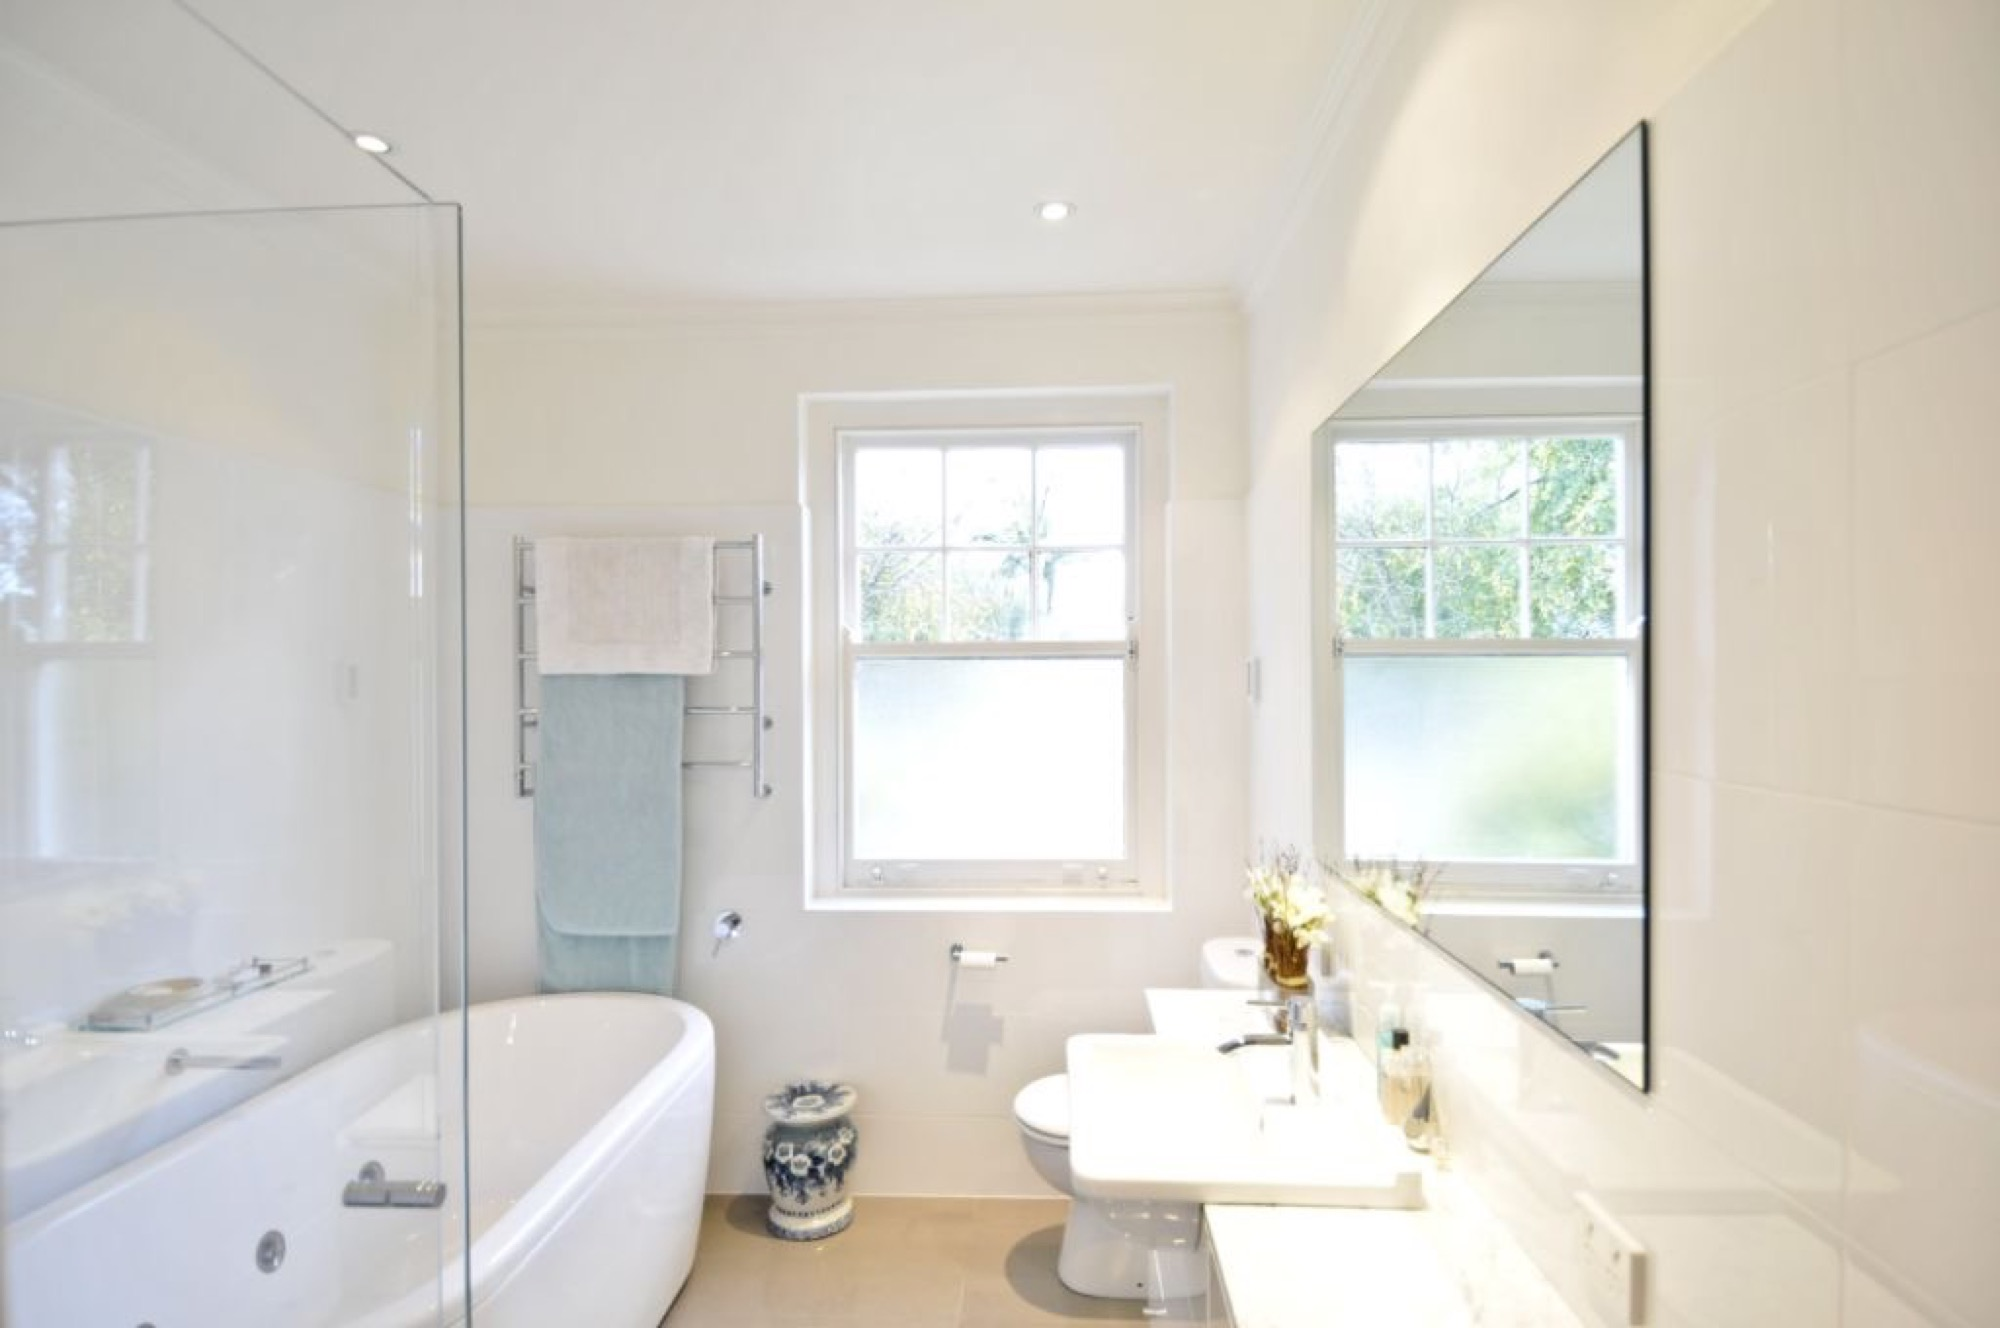 Bathroom Designs - Leigh Woollatt - Quality, Functionality, Perfection